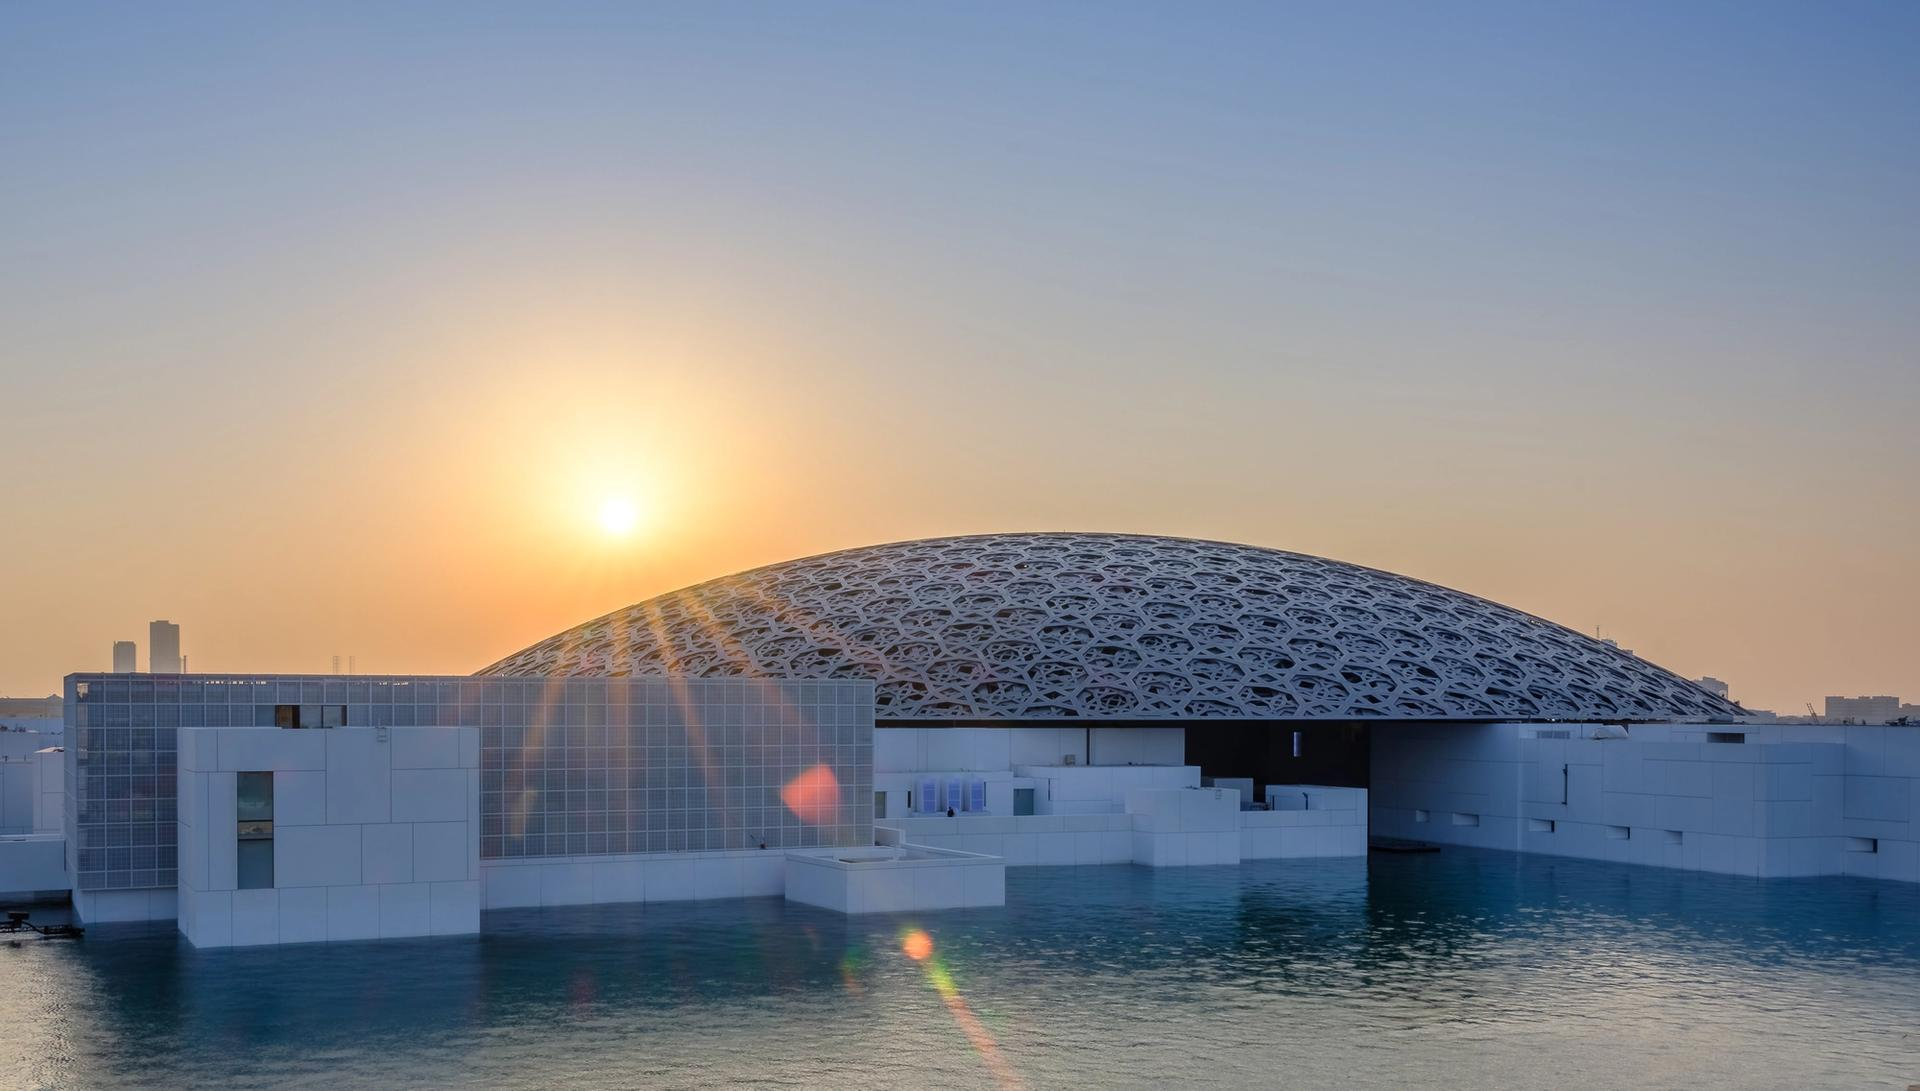 The talks at the Louvre Abu Dhabi symposium were centred around the three broad themes of museum collections, buildings and people Courtesy of Louvre Abu Dhabi - Department of Culture and Tourism Abu Dhabi